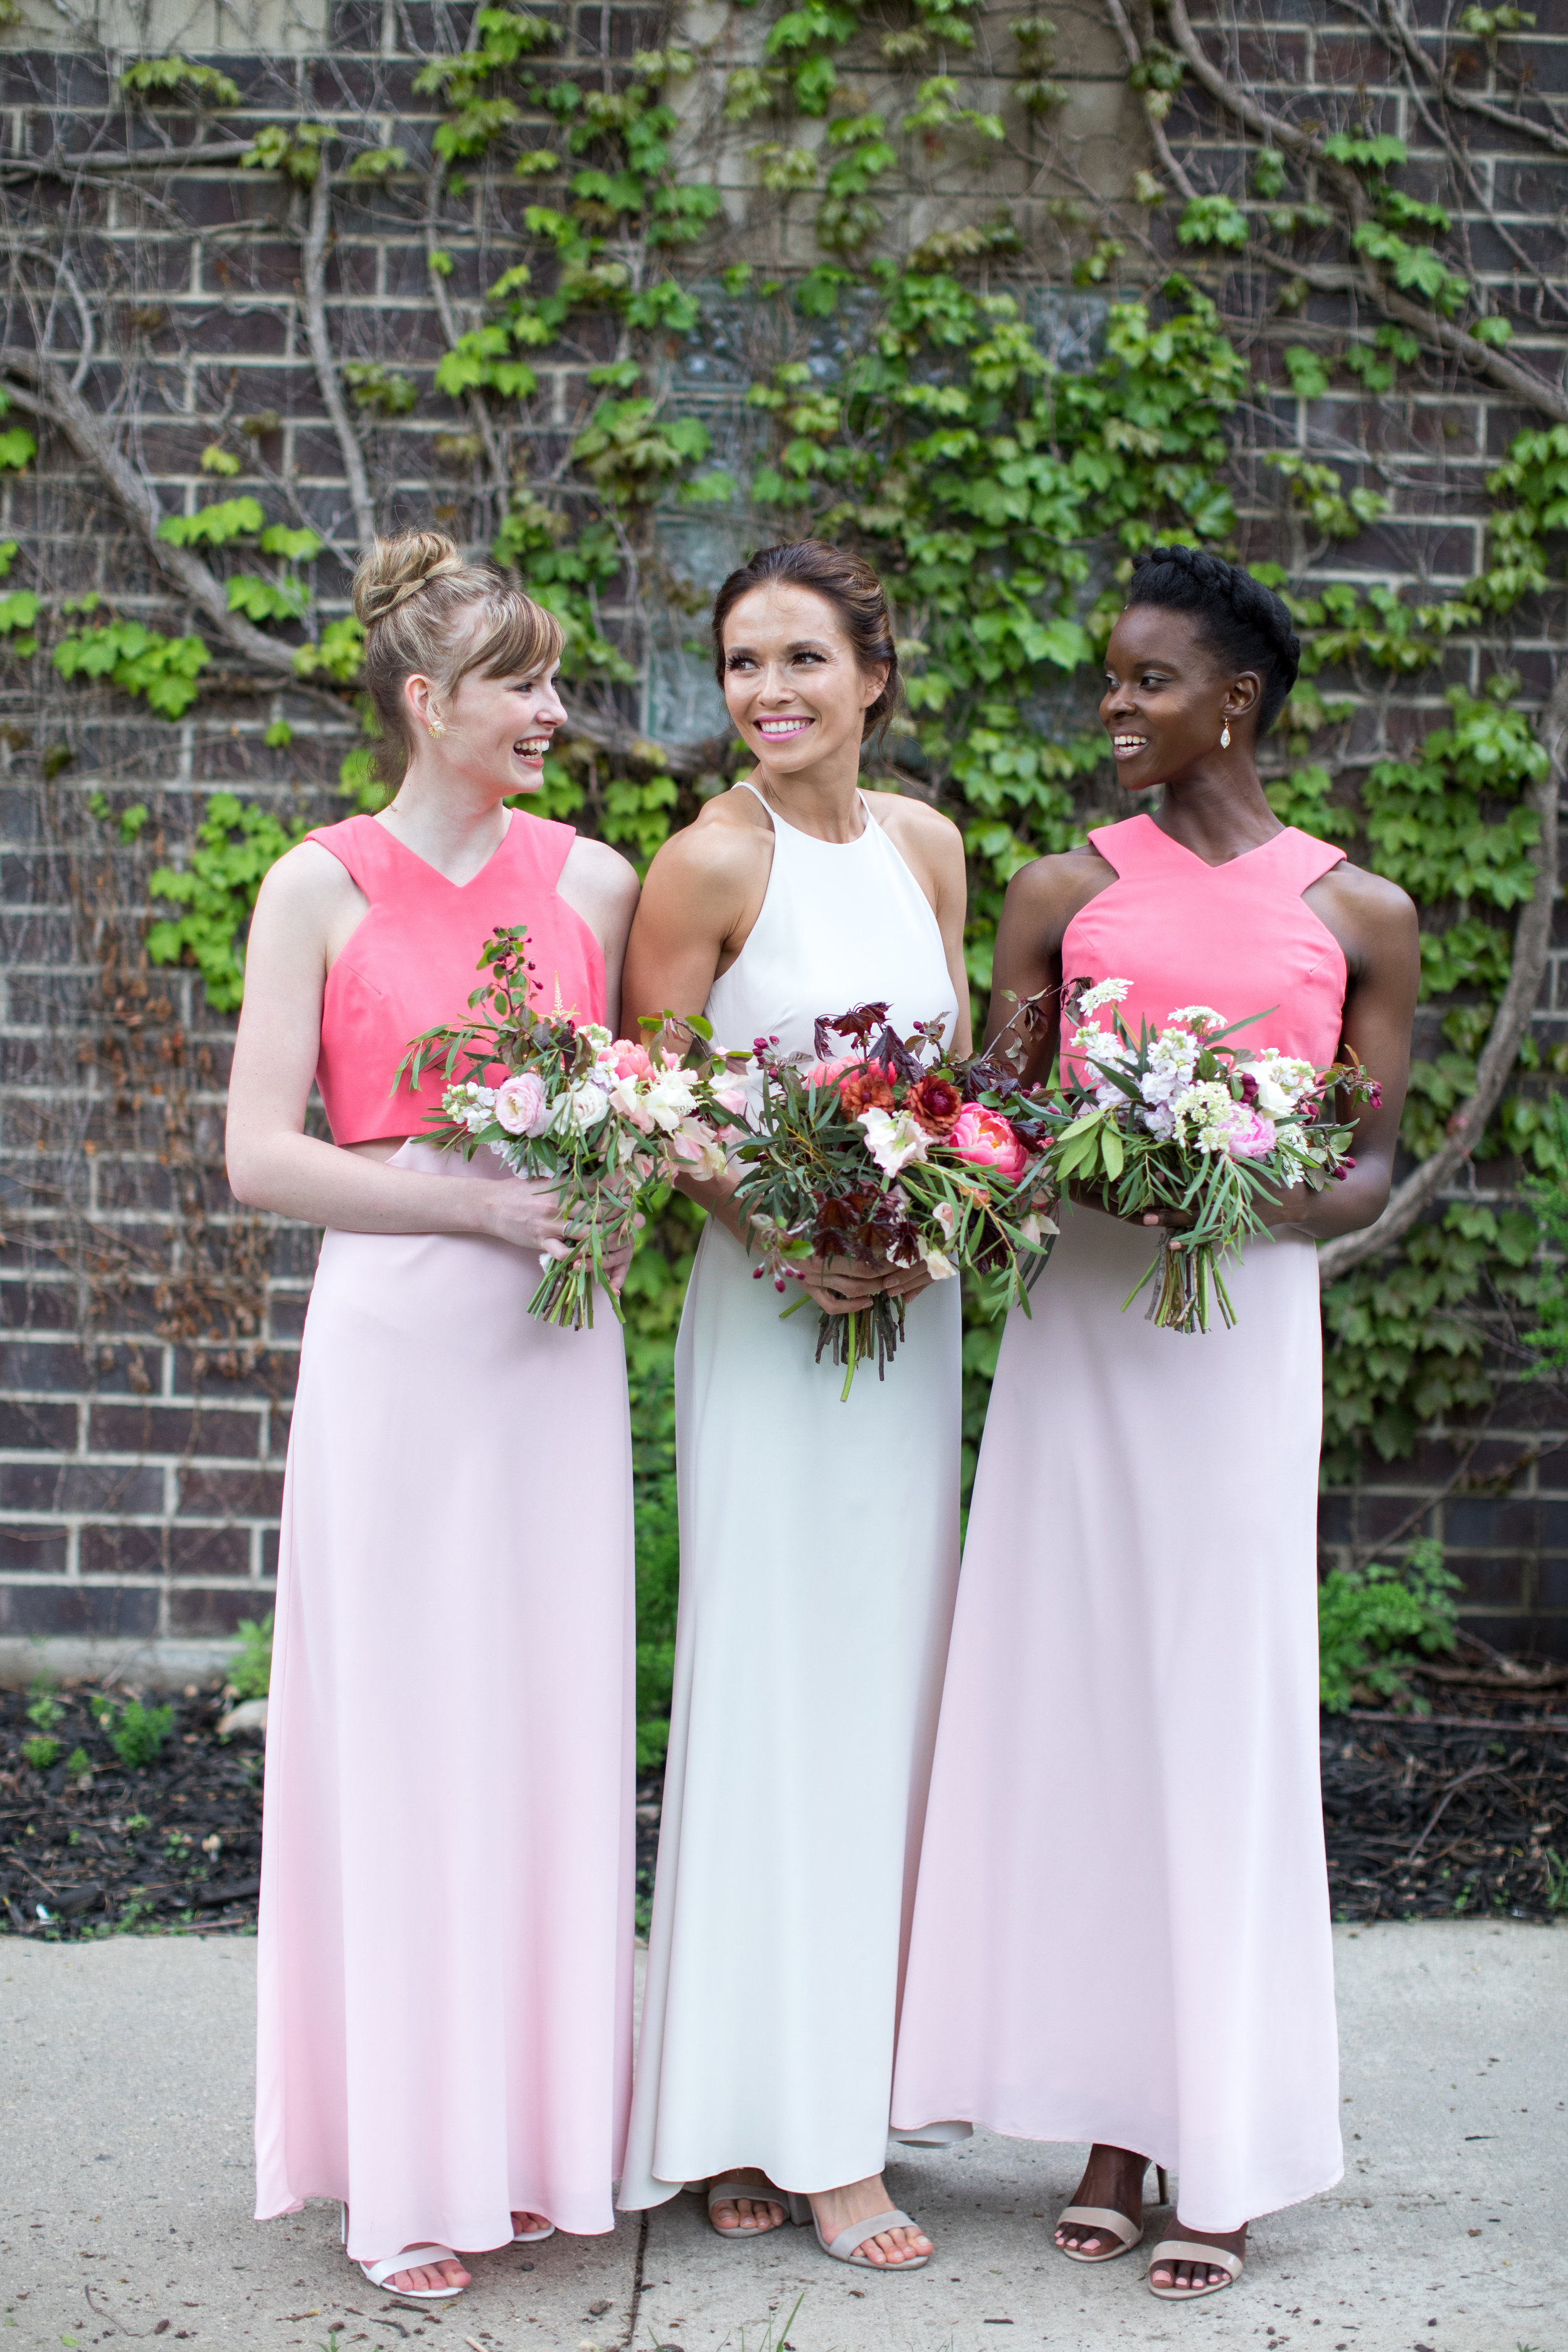 Midwest wedding photographer - bridesmaids 2